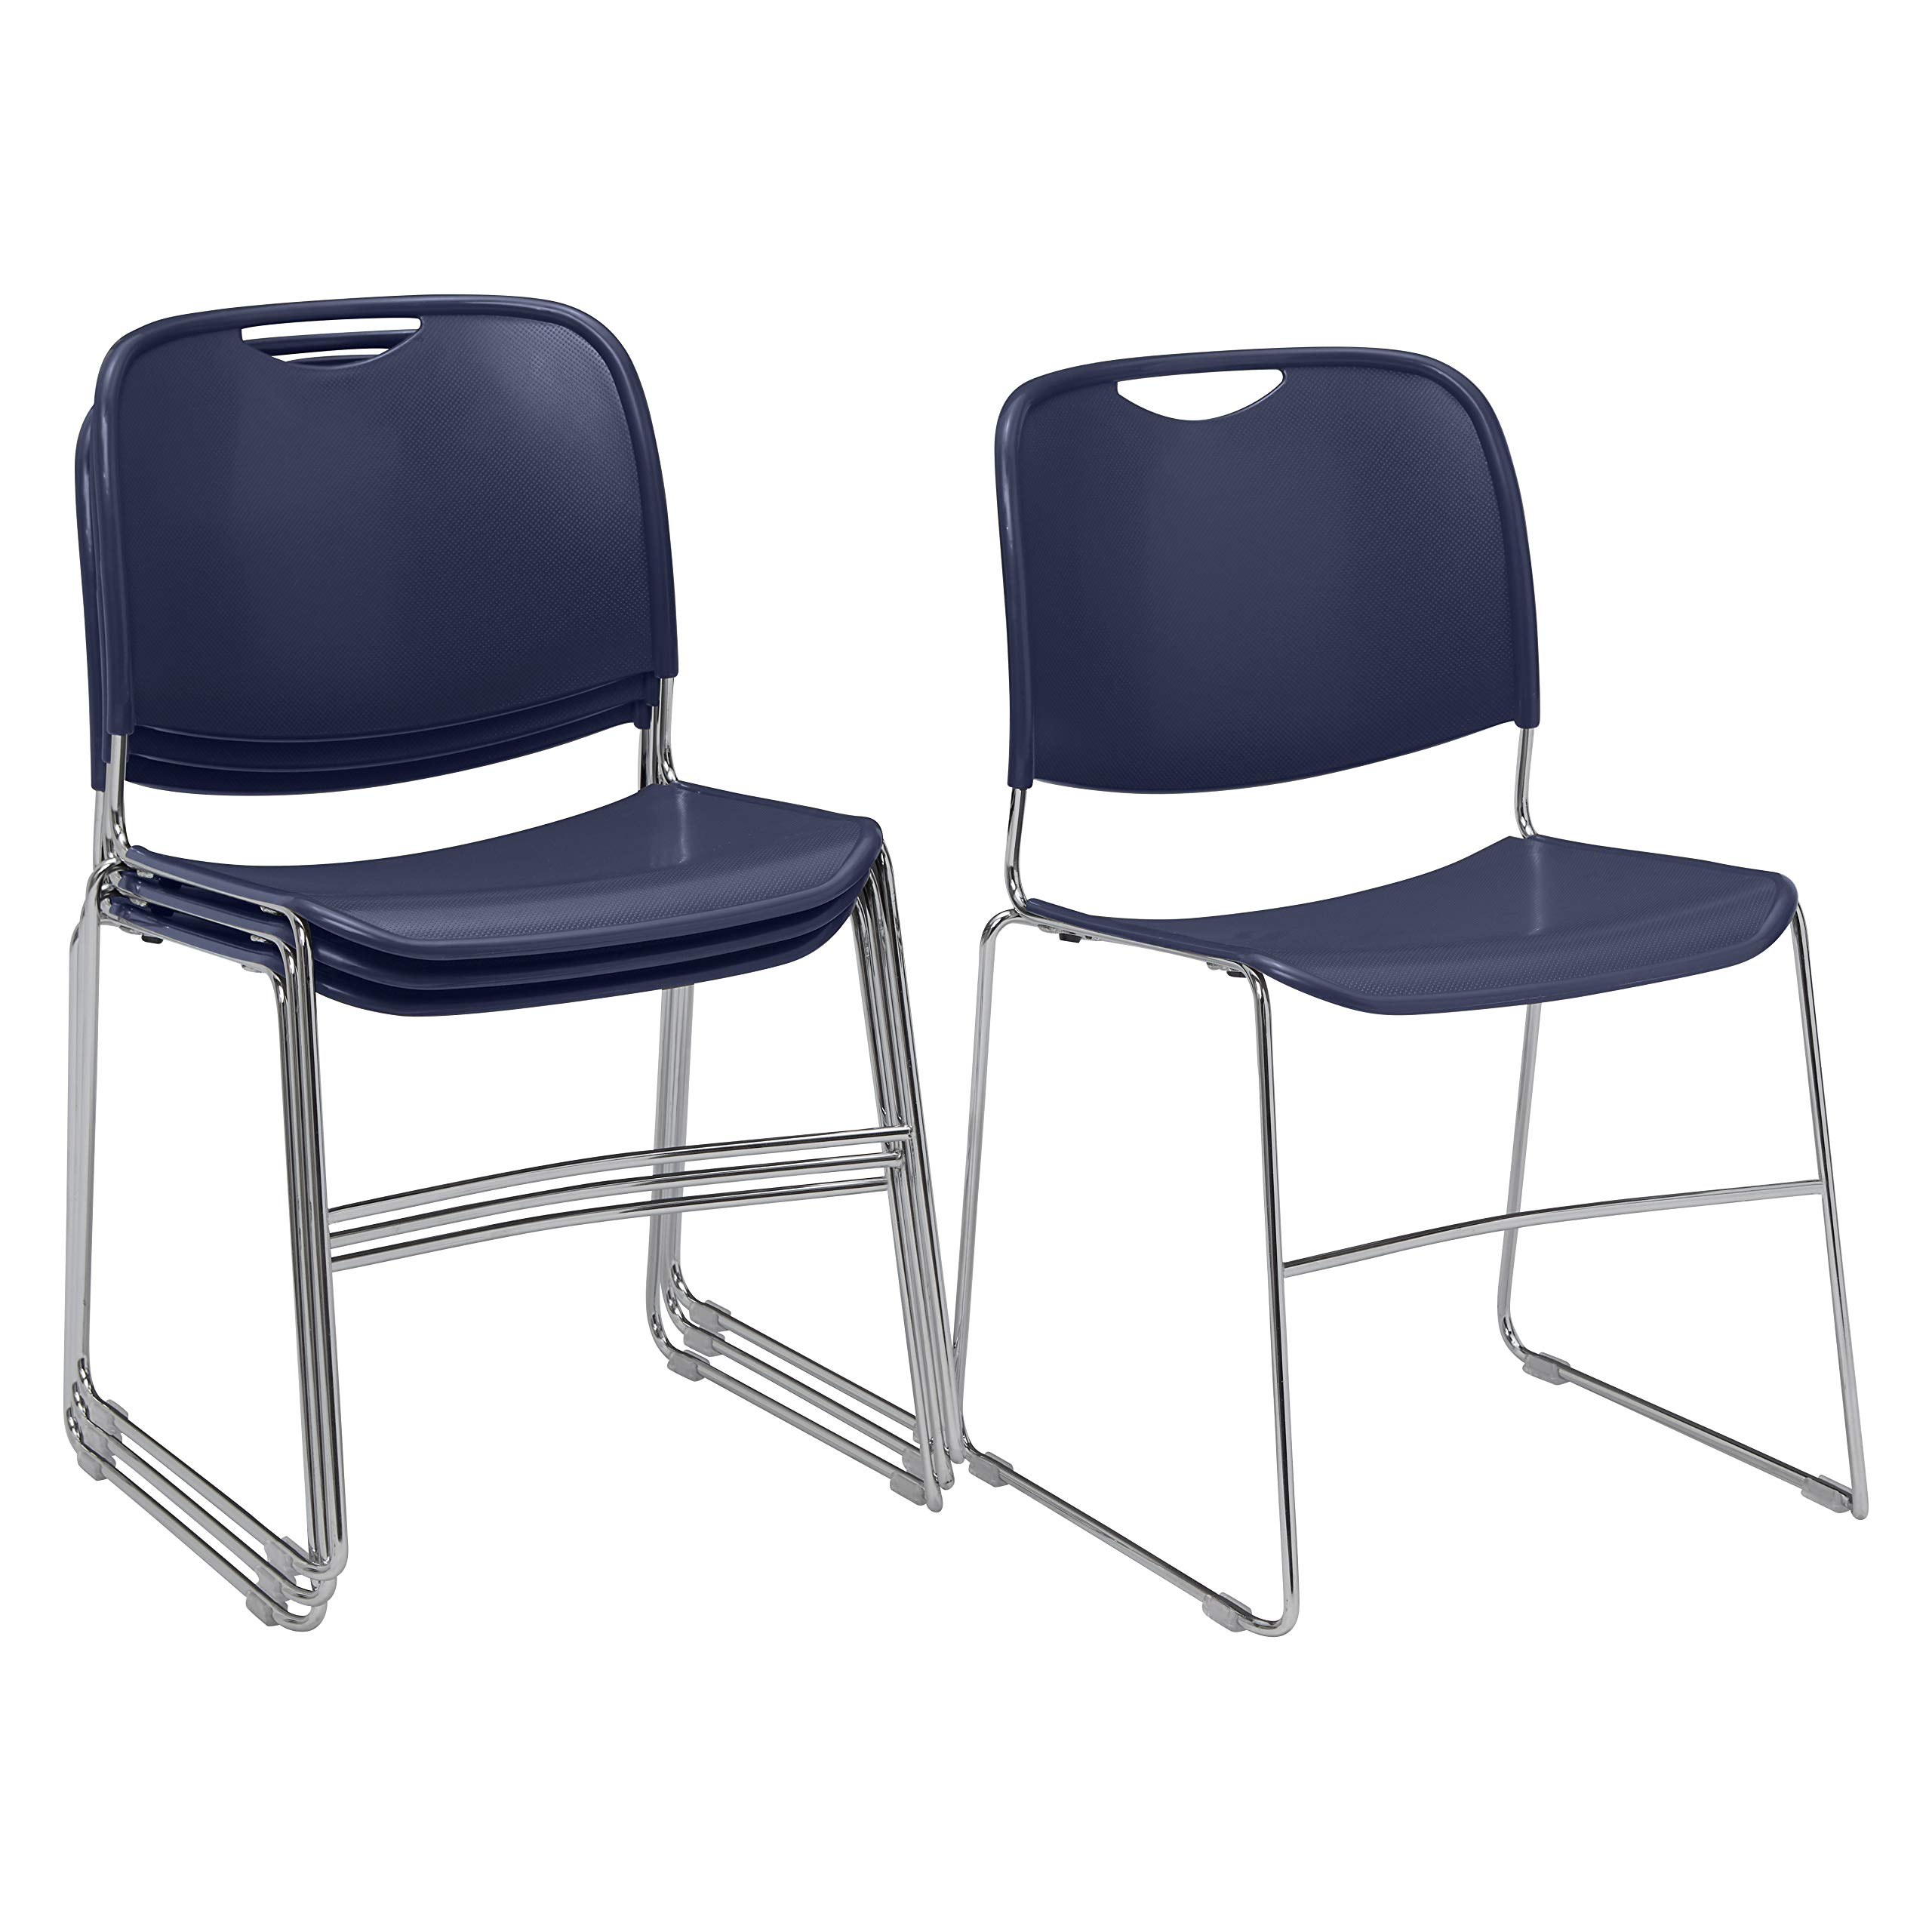 (4 Pack) National Public Seating 8500 Series Ultra-Compact Plastic Stack Chair, Navy Blue by National Public Seating